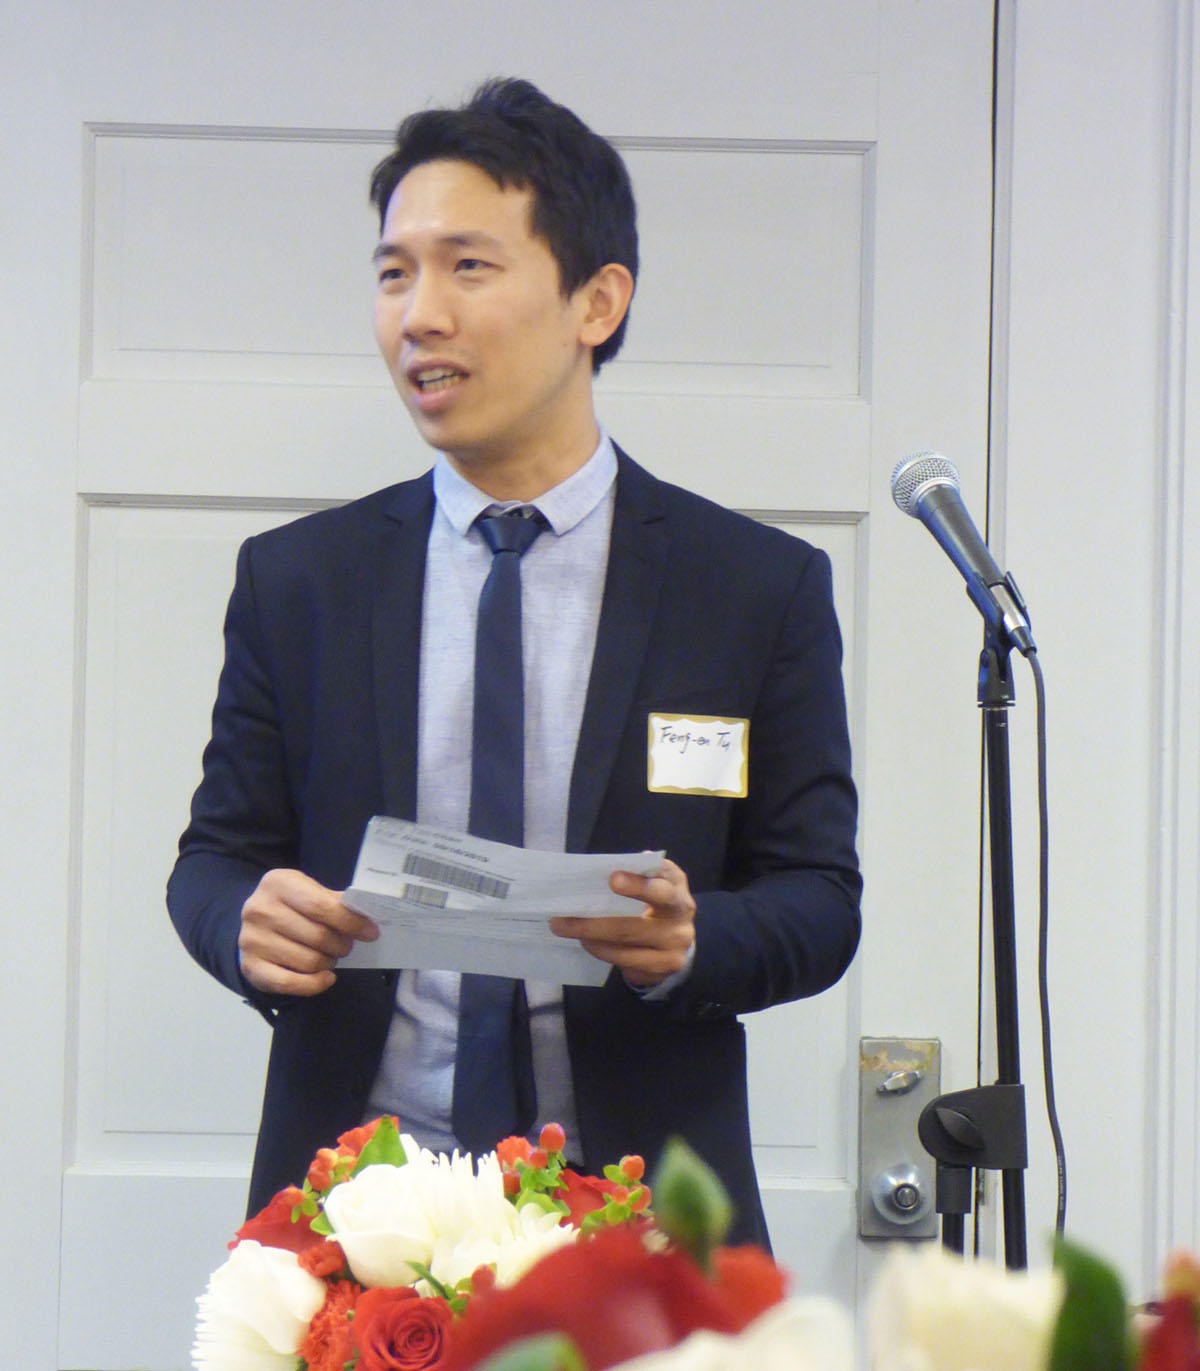 Feng-en Tu, wearing a dark suite and holding the prize certificate, delivers his speech in front of a microphone